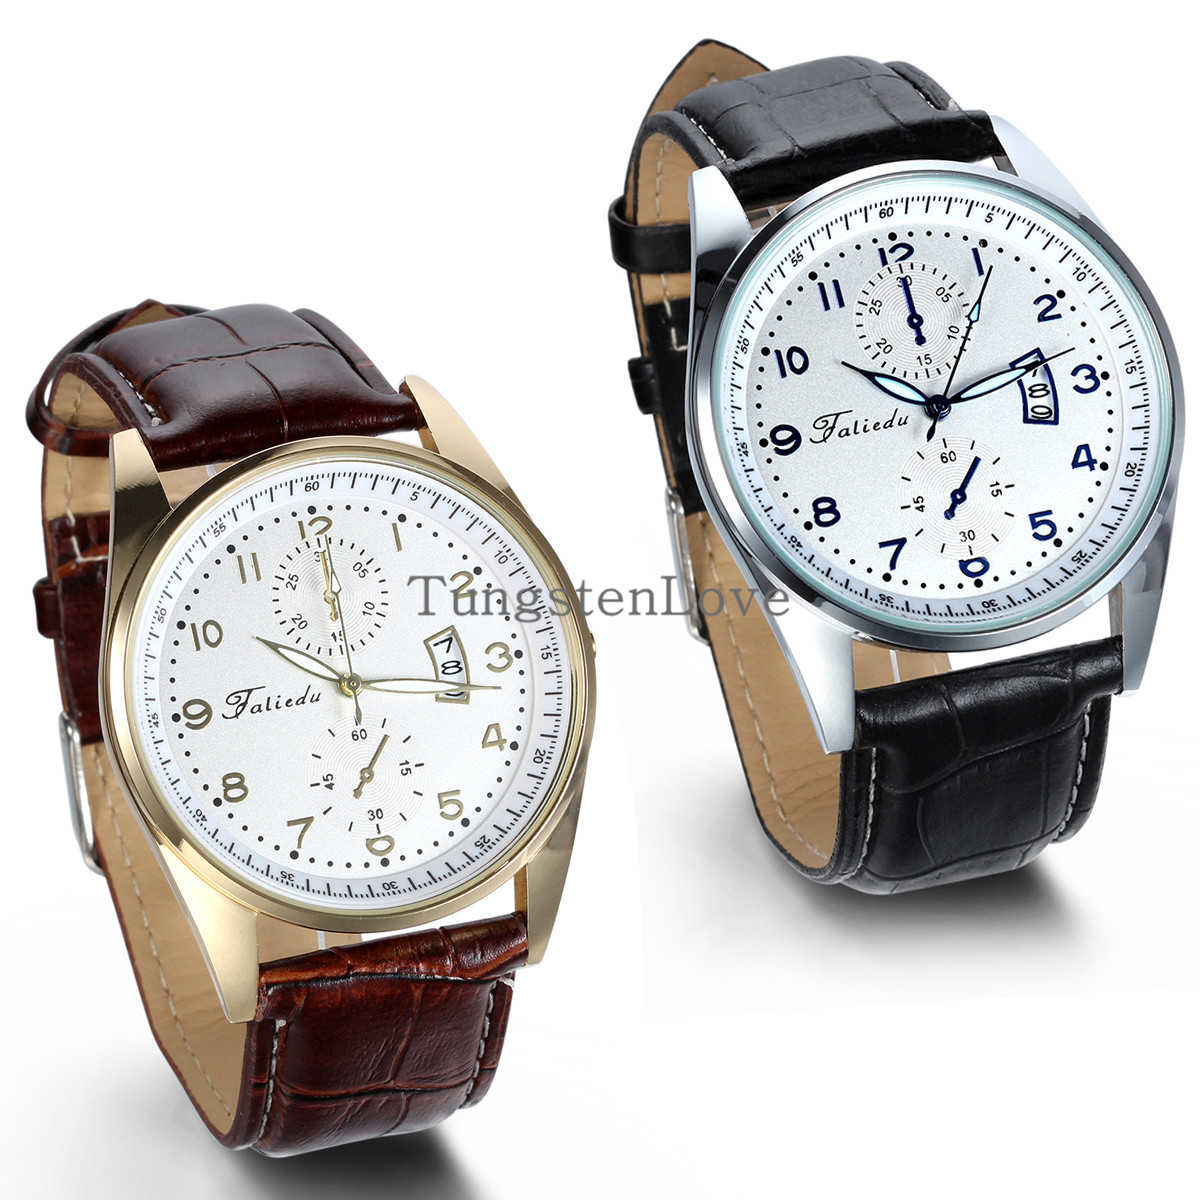 2015 new Business Quartz watch Men Dress Watches Brown & Black Leather Strap wristwatch Auto Date Display Two Dials reloj hombre - Tungsten Love Jewelry Store store